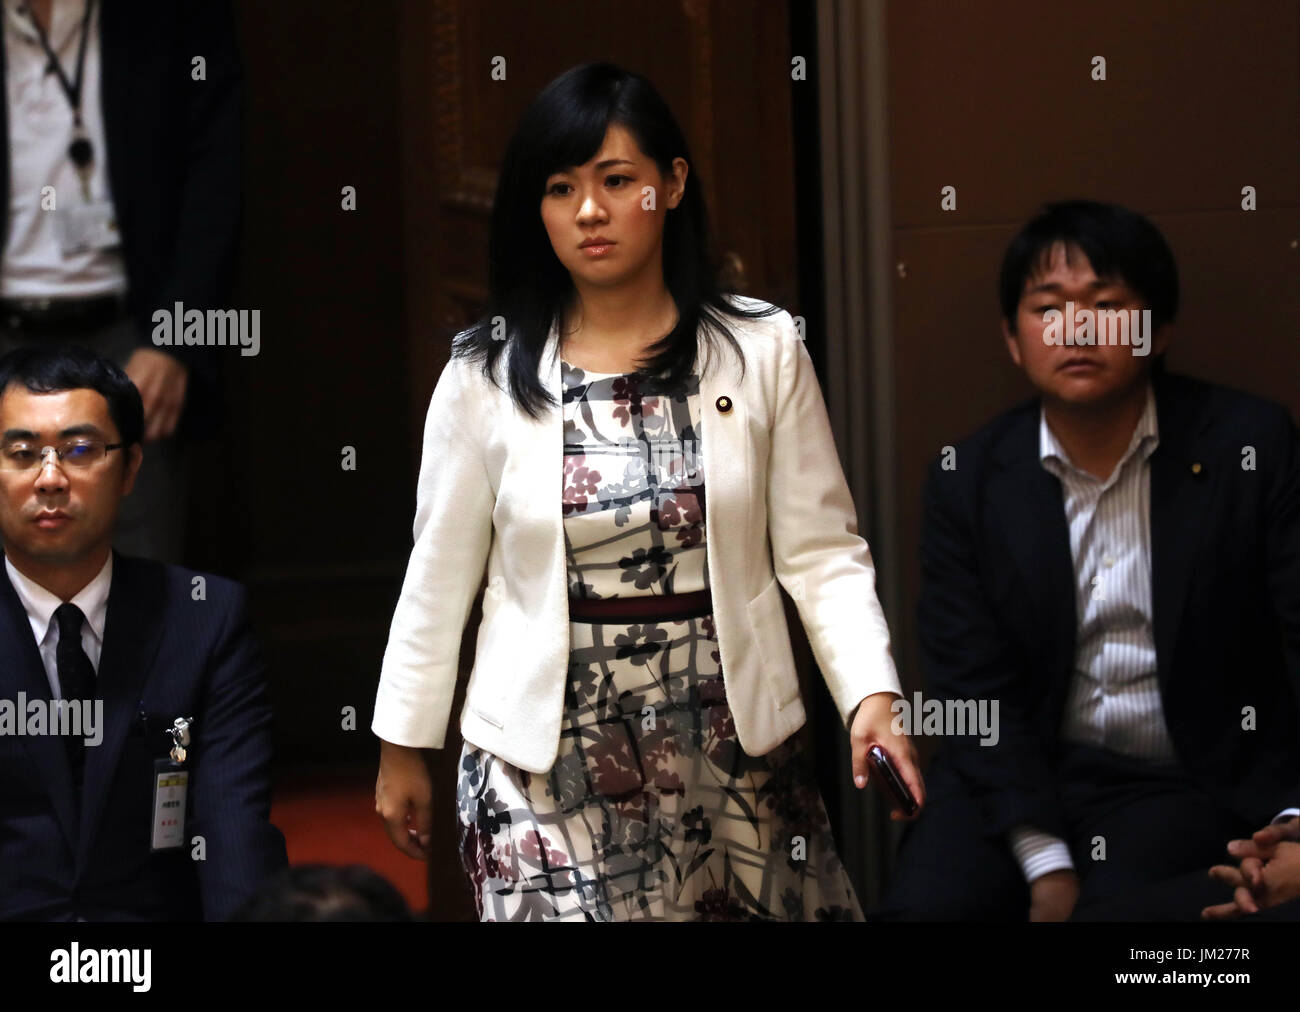 Tokyo, Japan. 25th July, 2017. Former Japan Restration party member and now independent lawmaker Sayuri Uenishi arrives at Upper House's budget committee session at the National Diet in Tokyo on Tuesday, July 25, 2017. Abe said he was not asked by his friend Kotaro Kake for help in opening a new university department in Imabari. Credit: Yoshio Tsunoda/AFLO/Alamy Live News - Stock Image